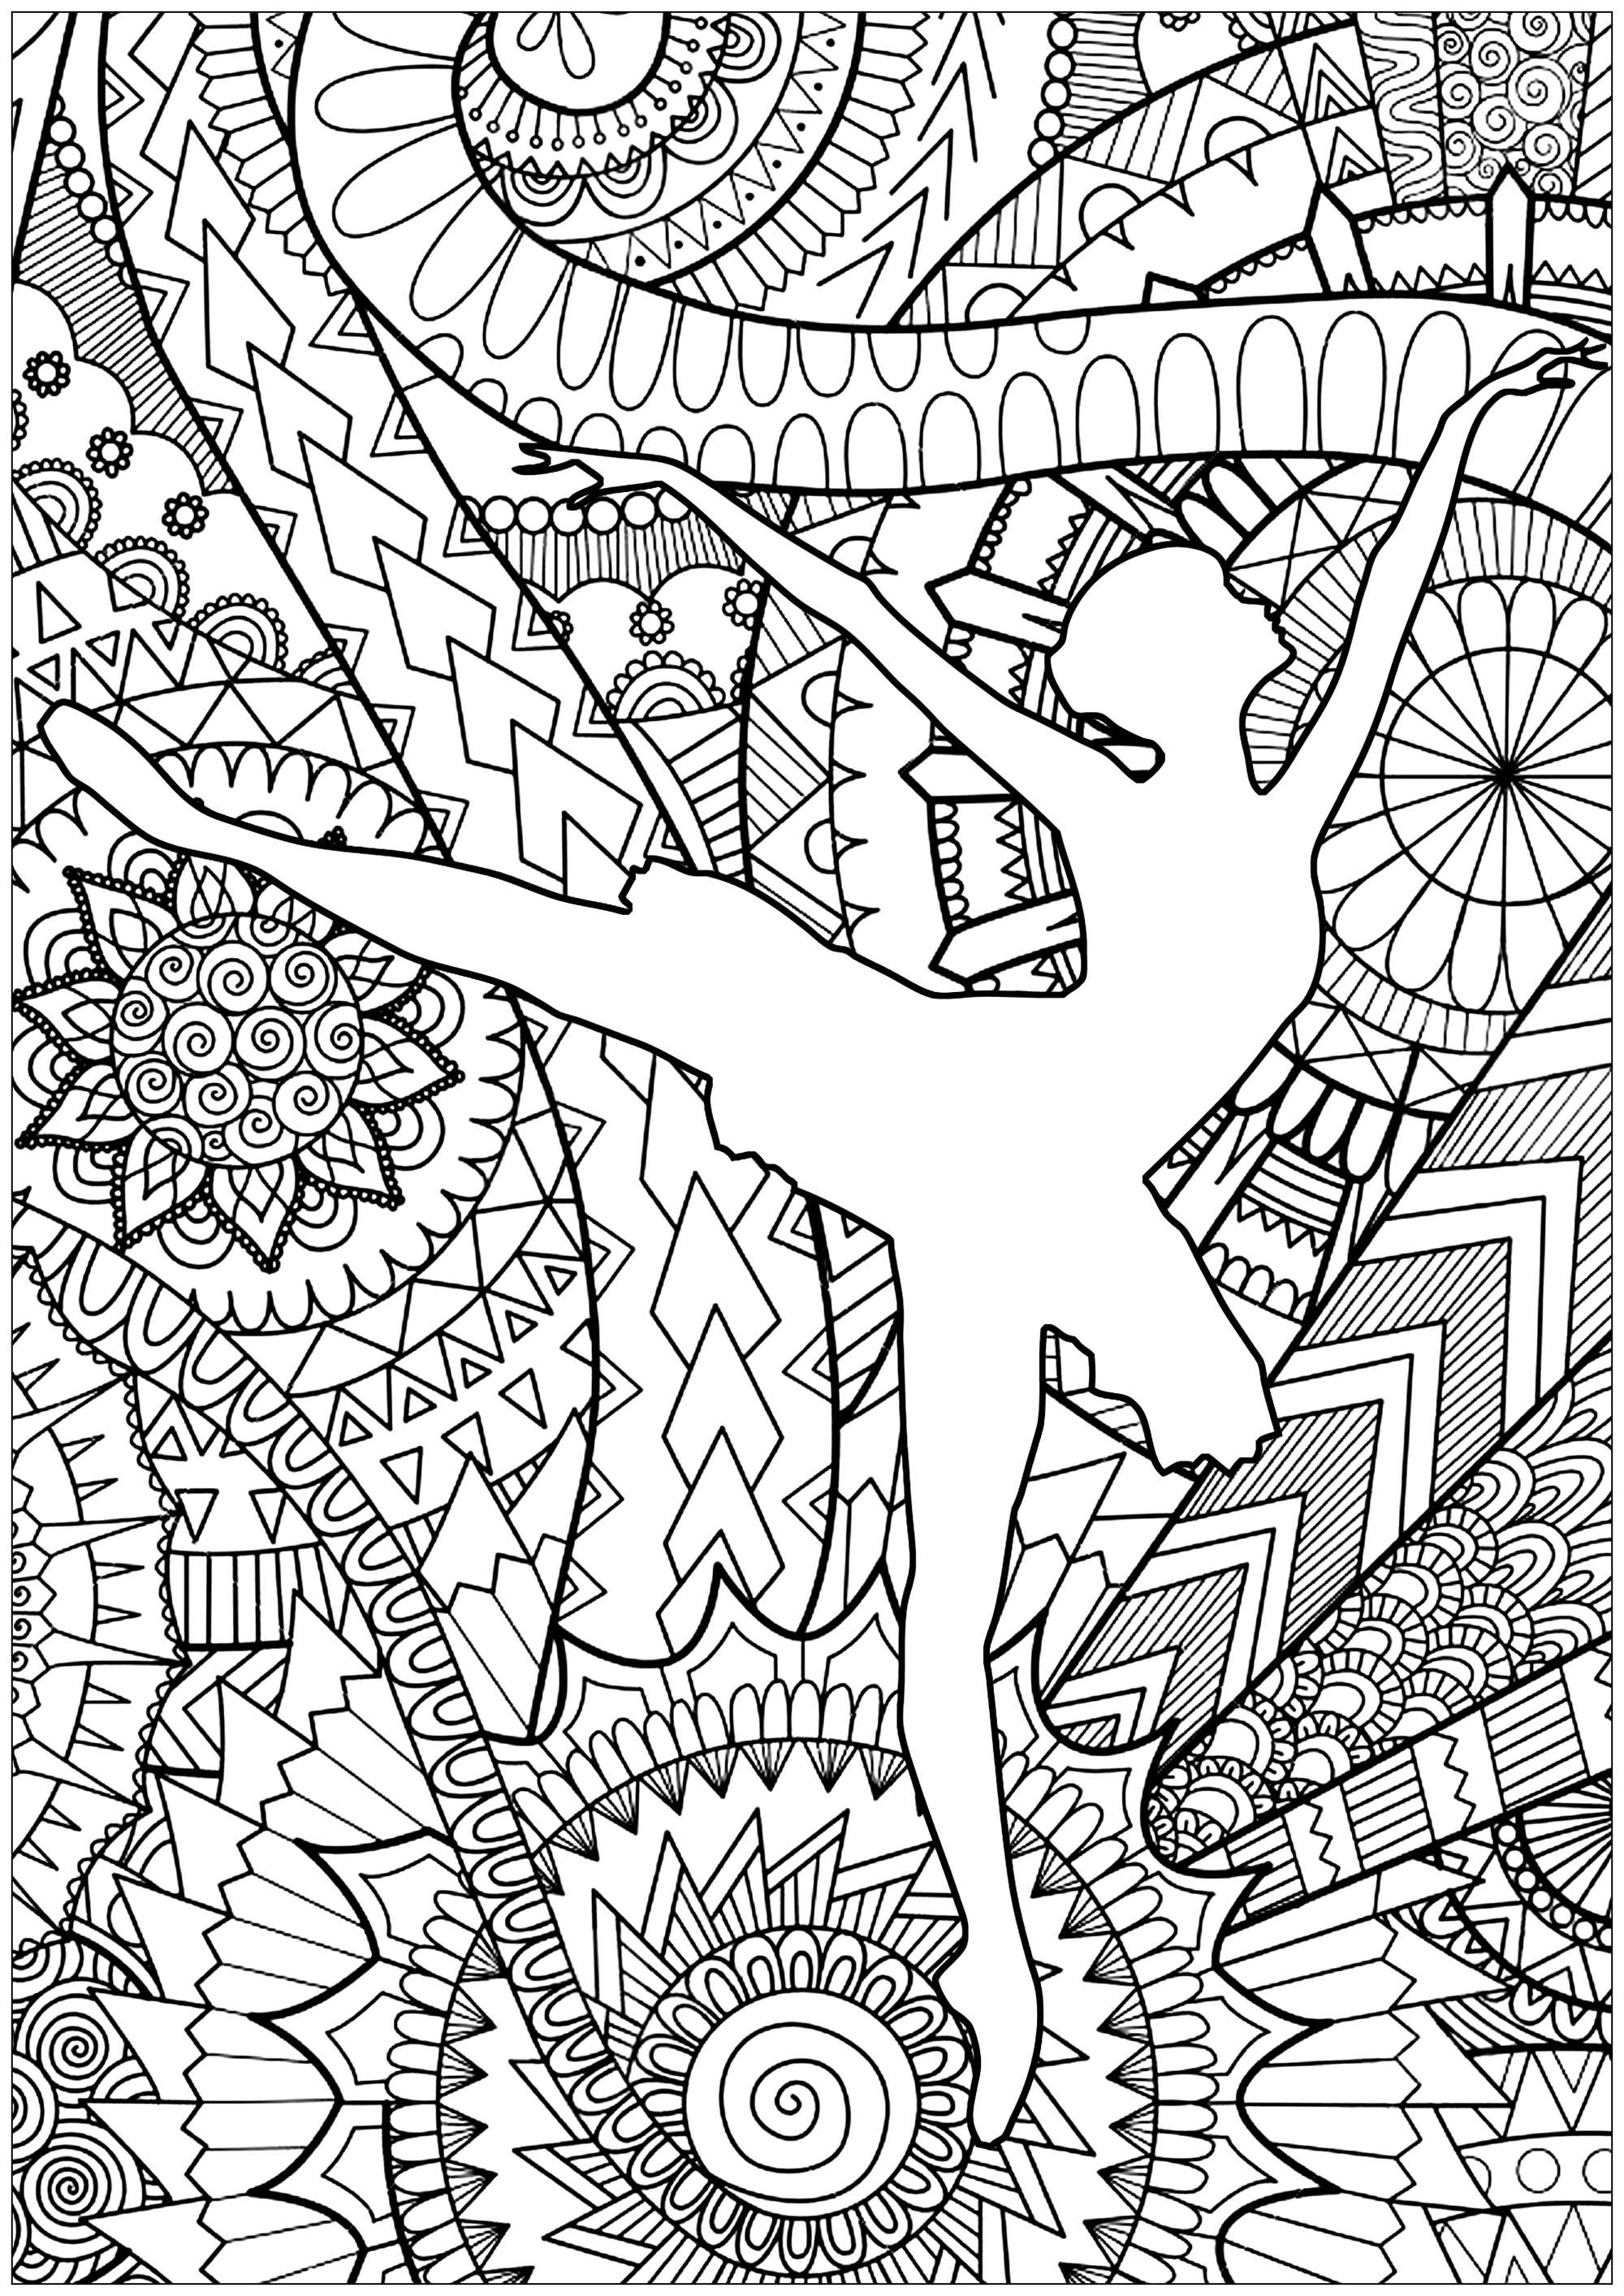 Ballet Dancer Beautiful Ballet Dancer Silhouette With Abstract And Lovely Patterns In Dance Coloring Pages Ballerina Coloring Pages Abstract Coloring Pages